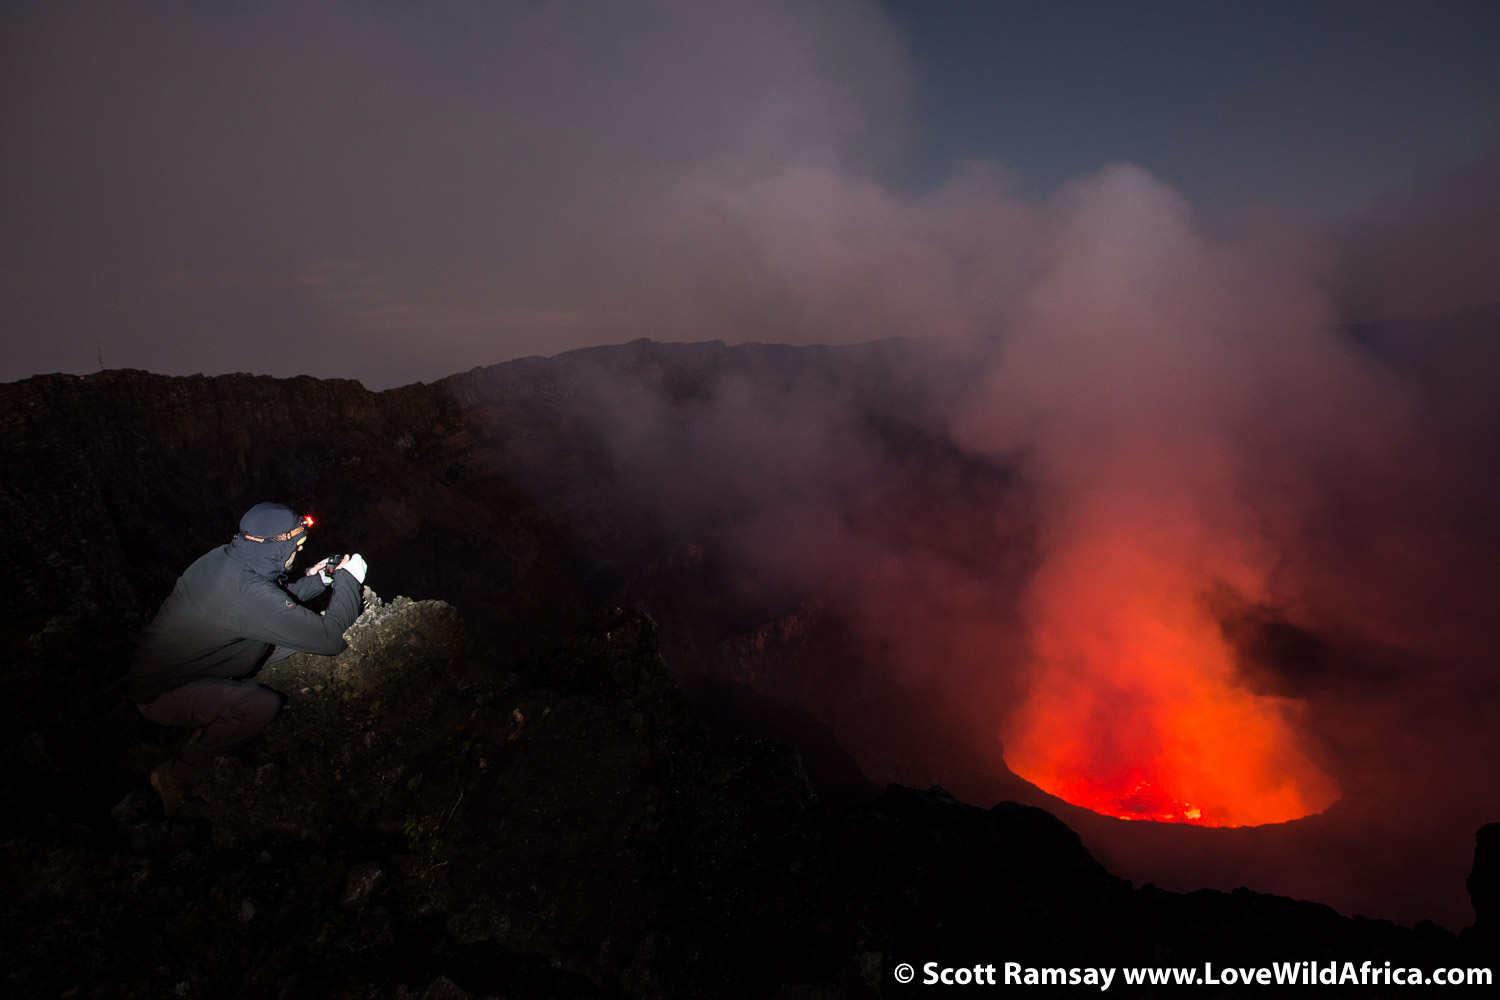 A hiker takes a photo of the lava lake of Mount Nyiragongo.